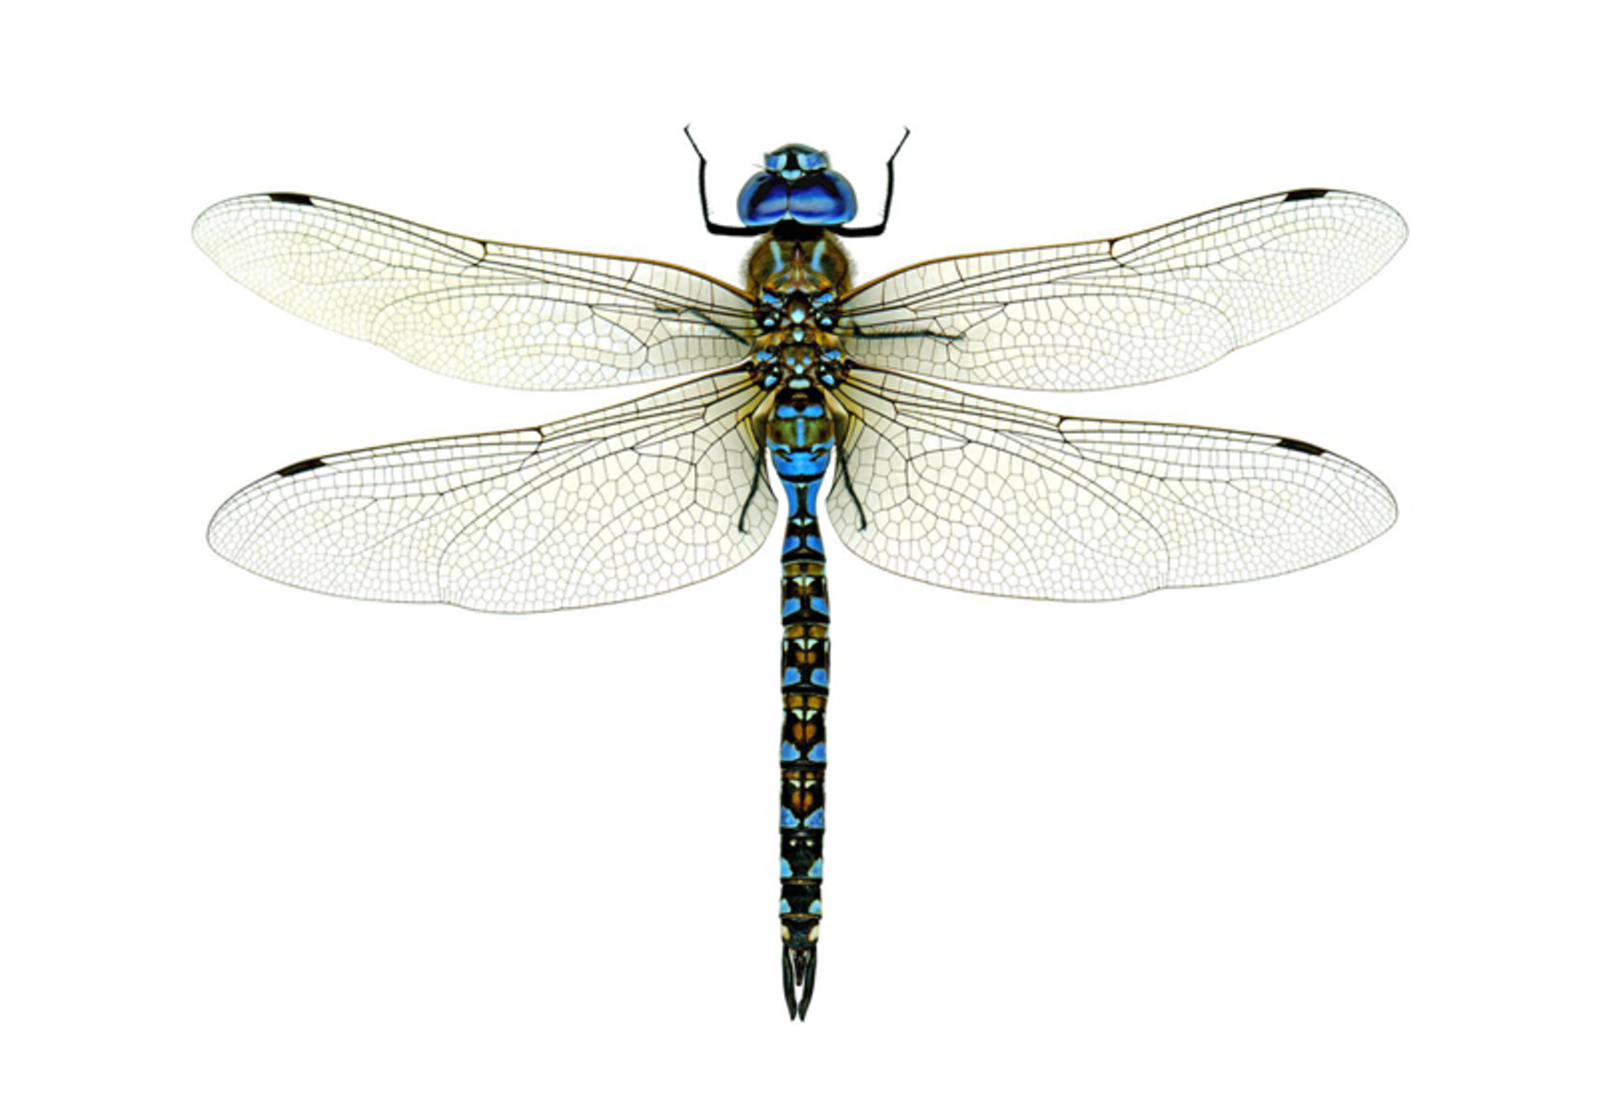 Chasing Dragonflies and Damselflies | Audubon - Dragonfly PNG